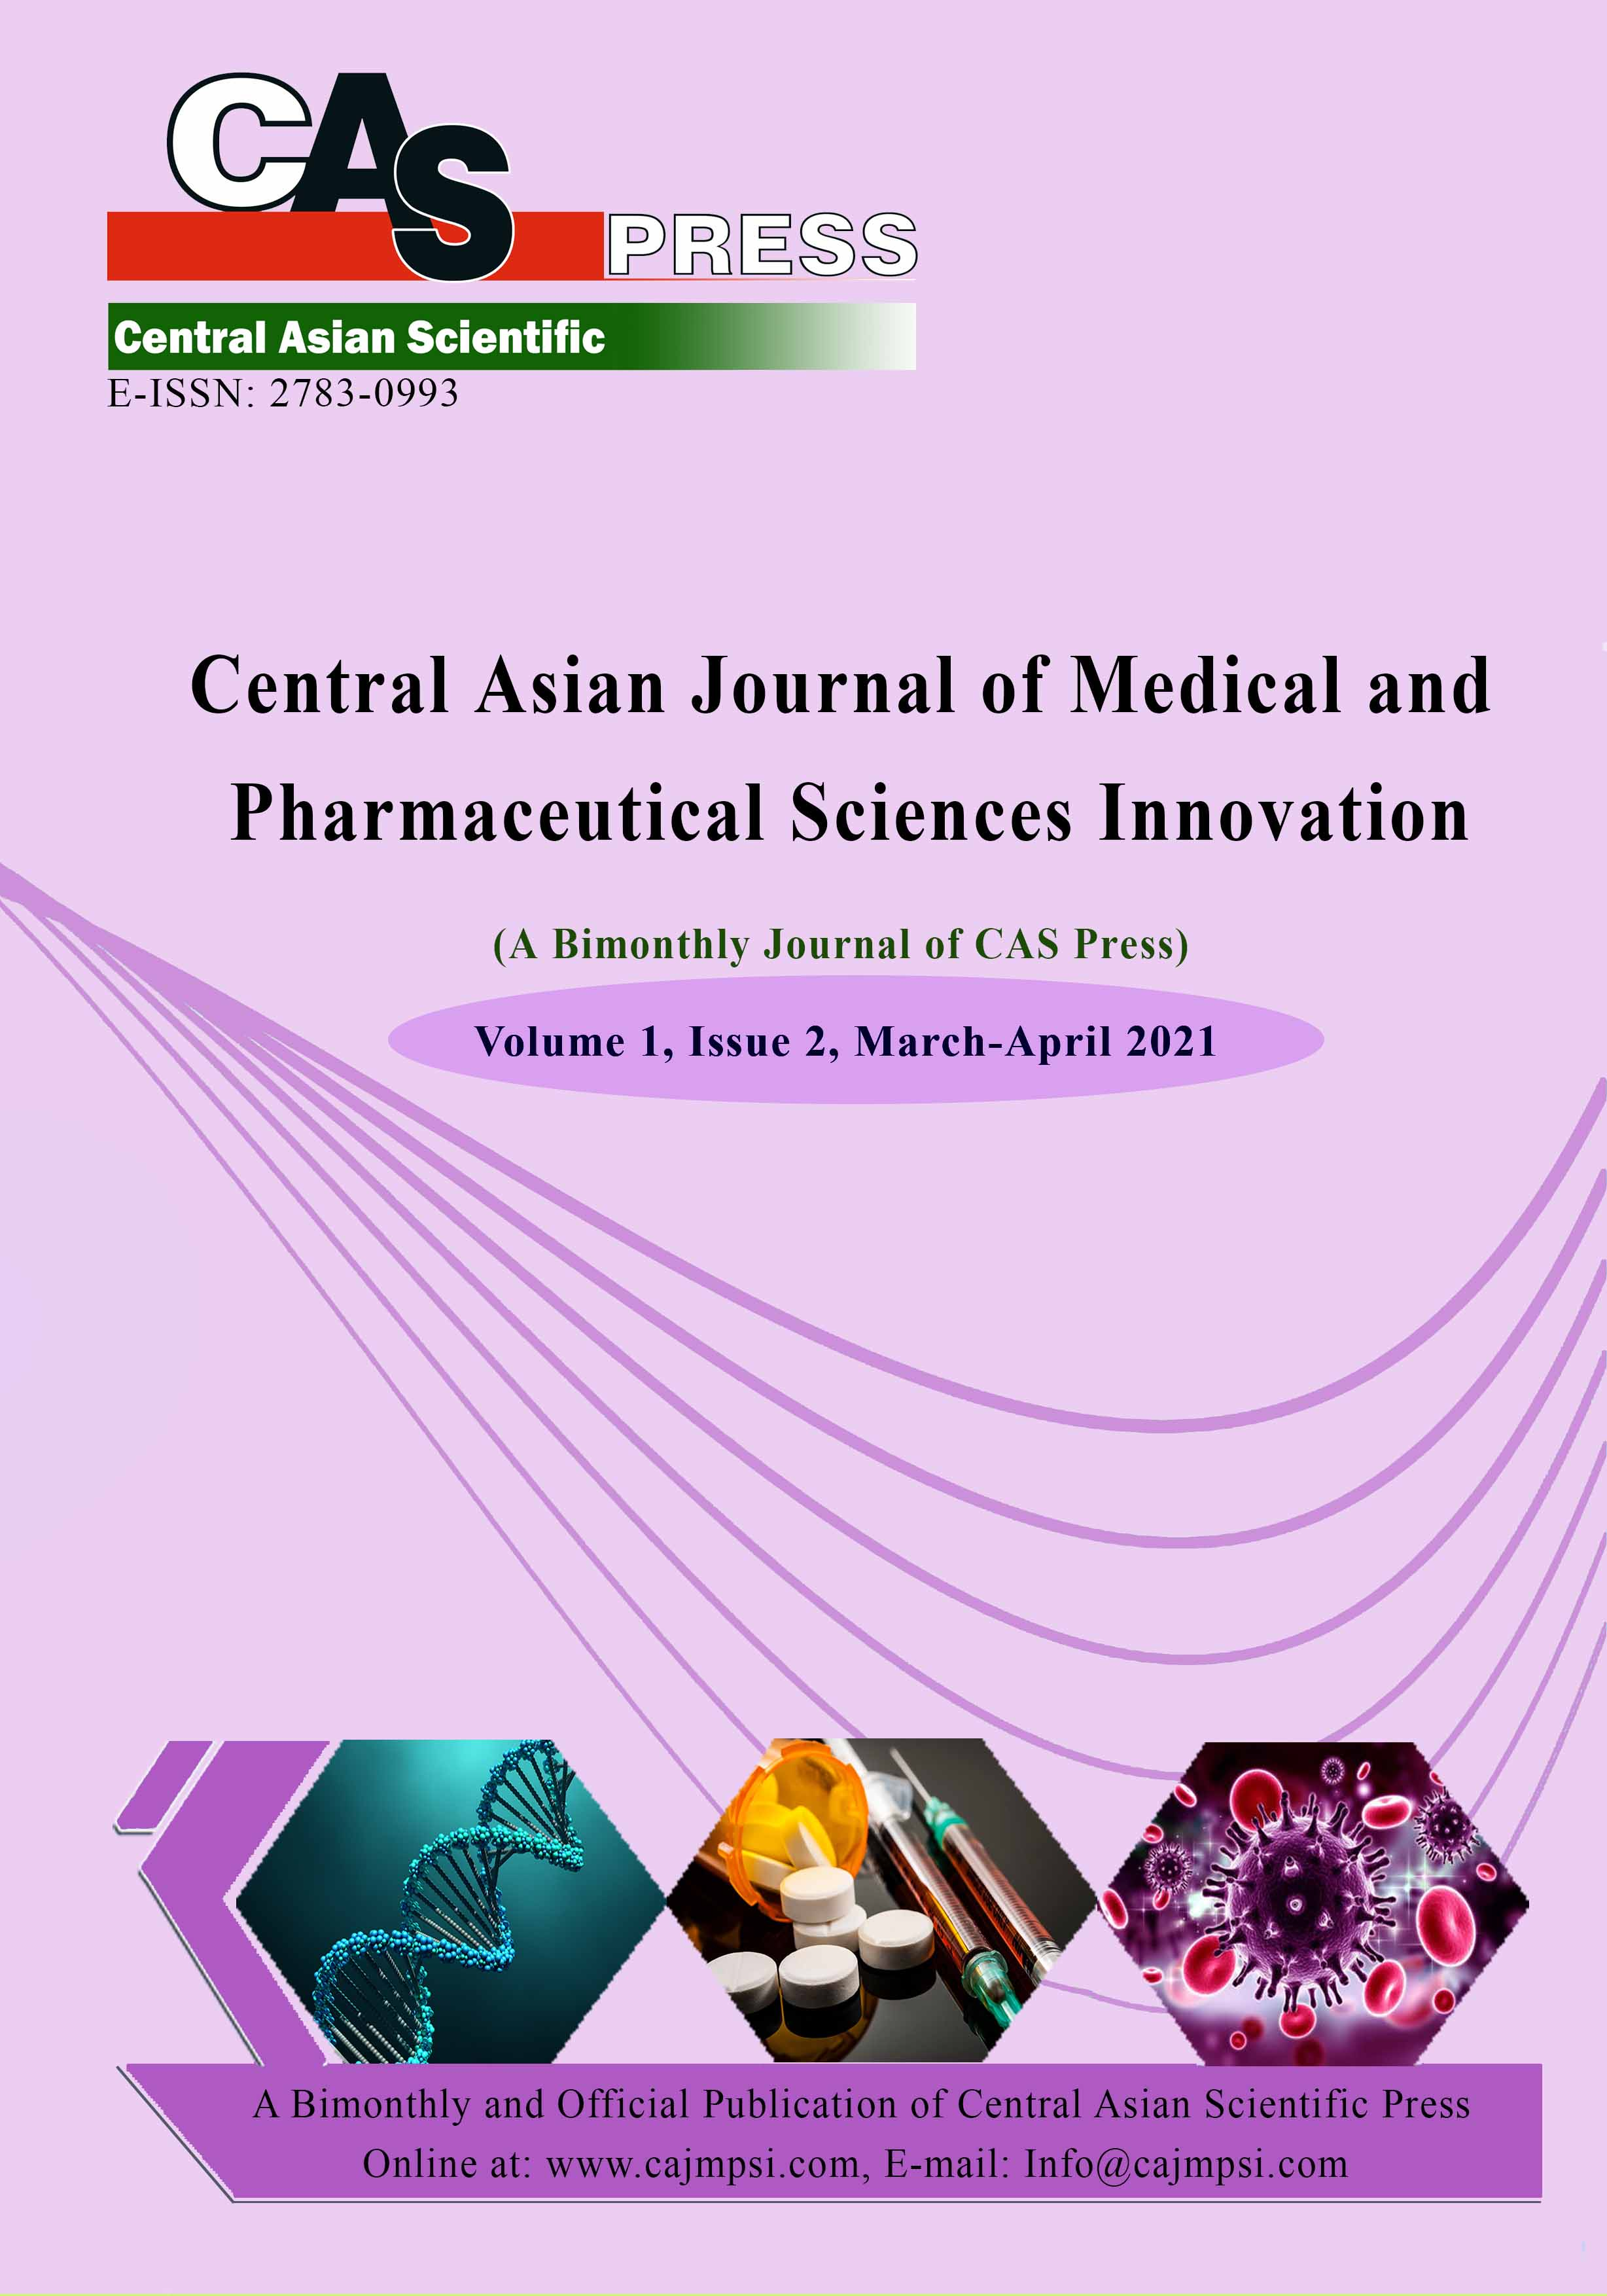 Central Asian Journal of Medical and Pharmaceutical Sciences Innovation